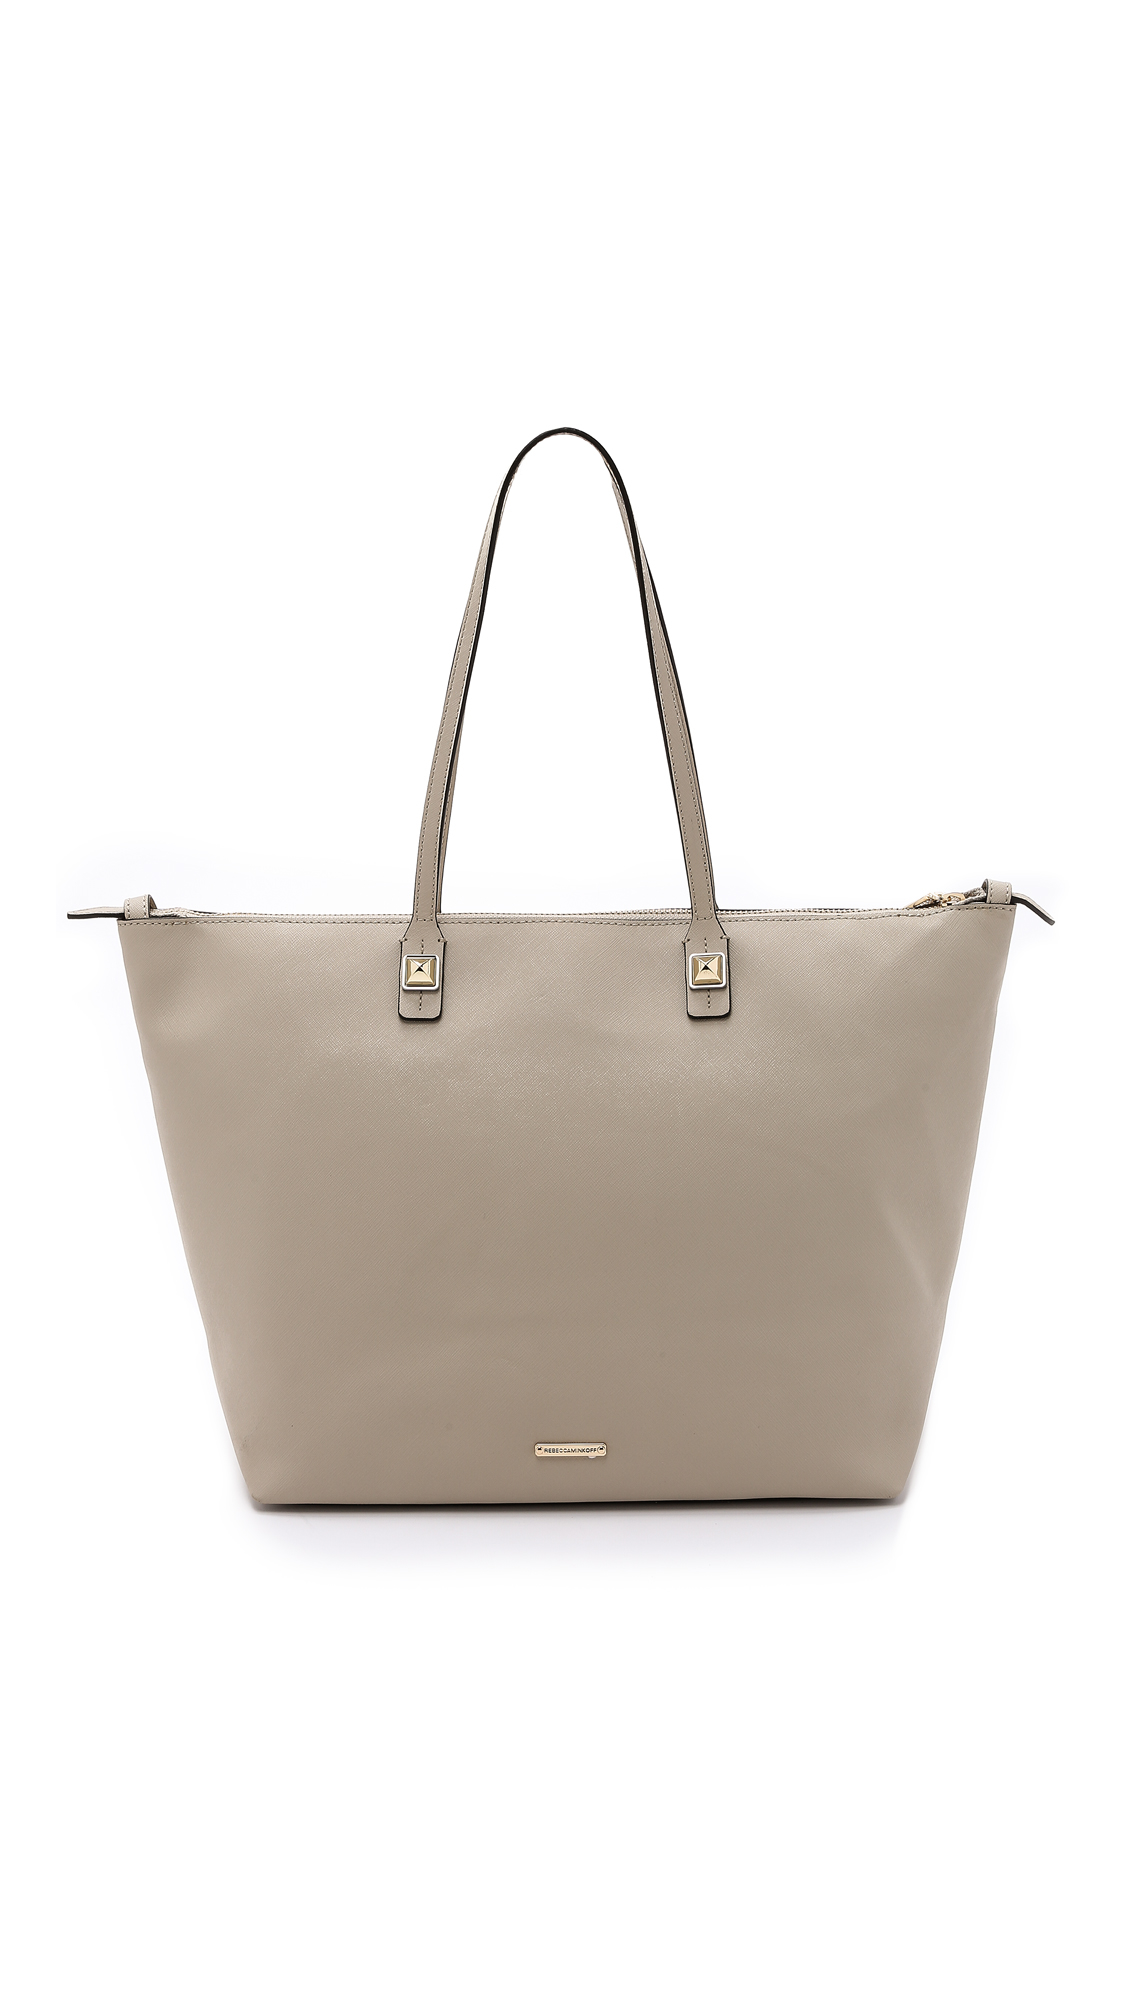 Rebecca Minkoff East West Mab Tote - Tranquil in Khaki (Natural)